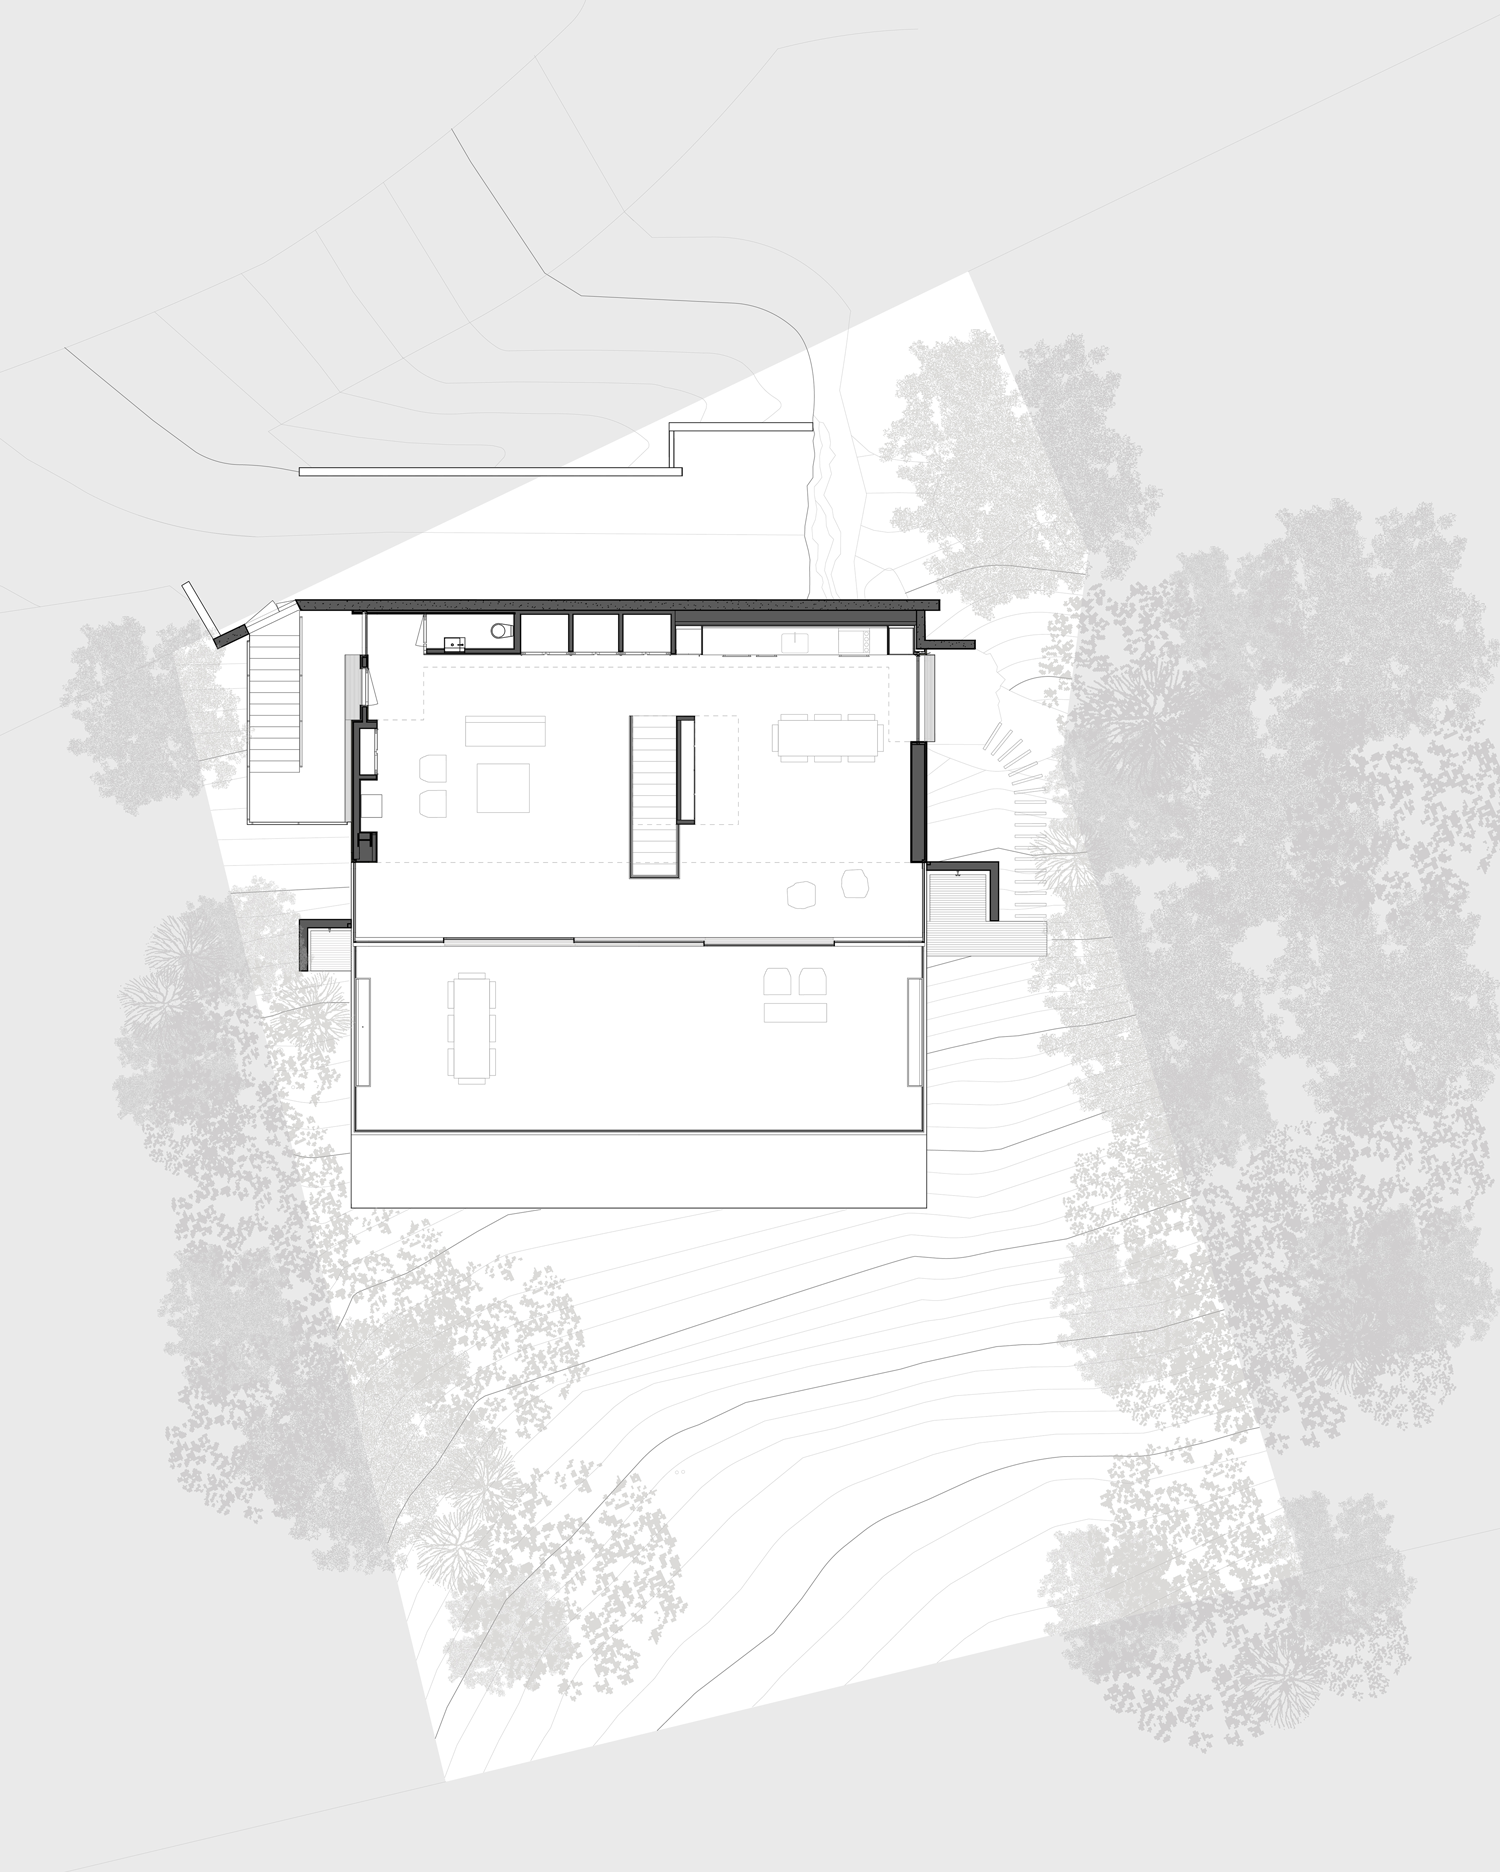 rSBH09---SITE-PLAN.png